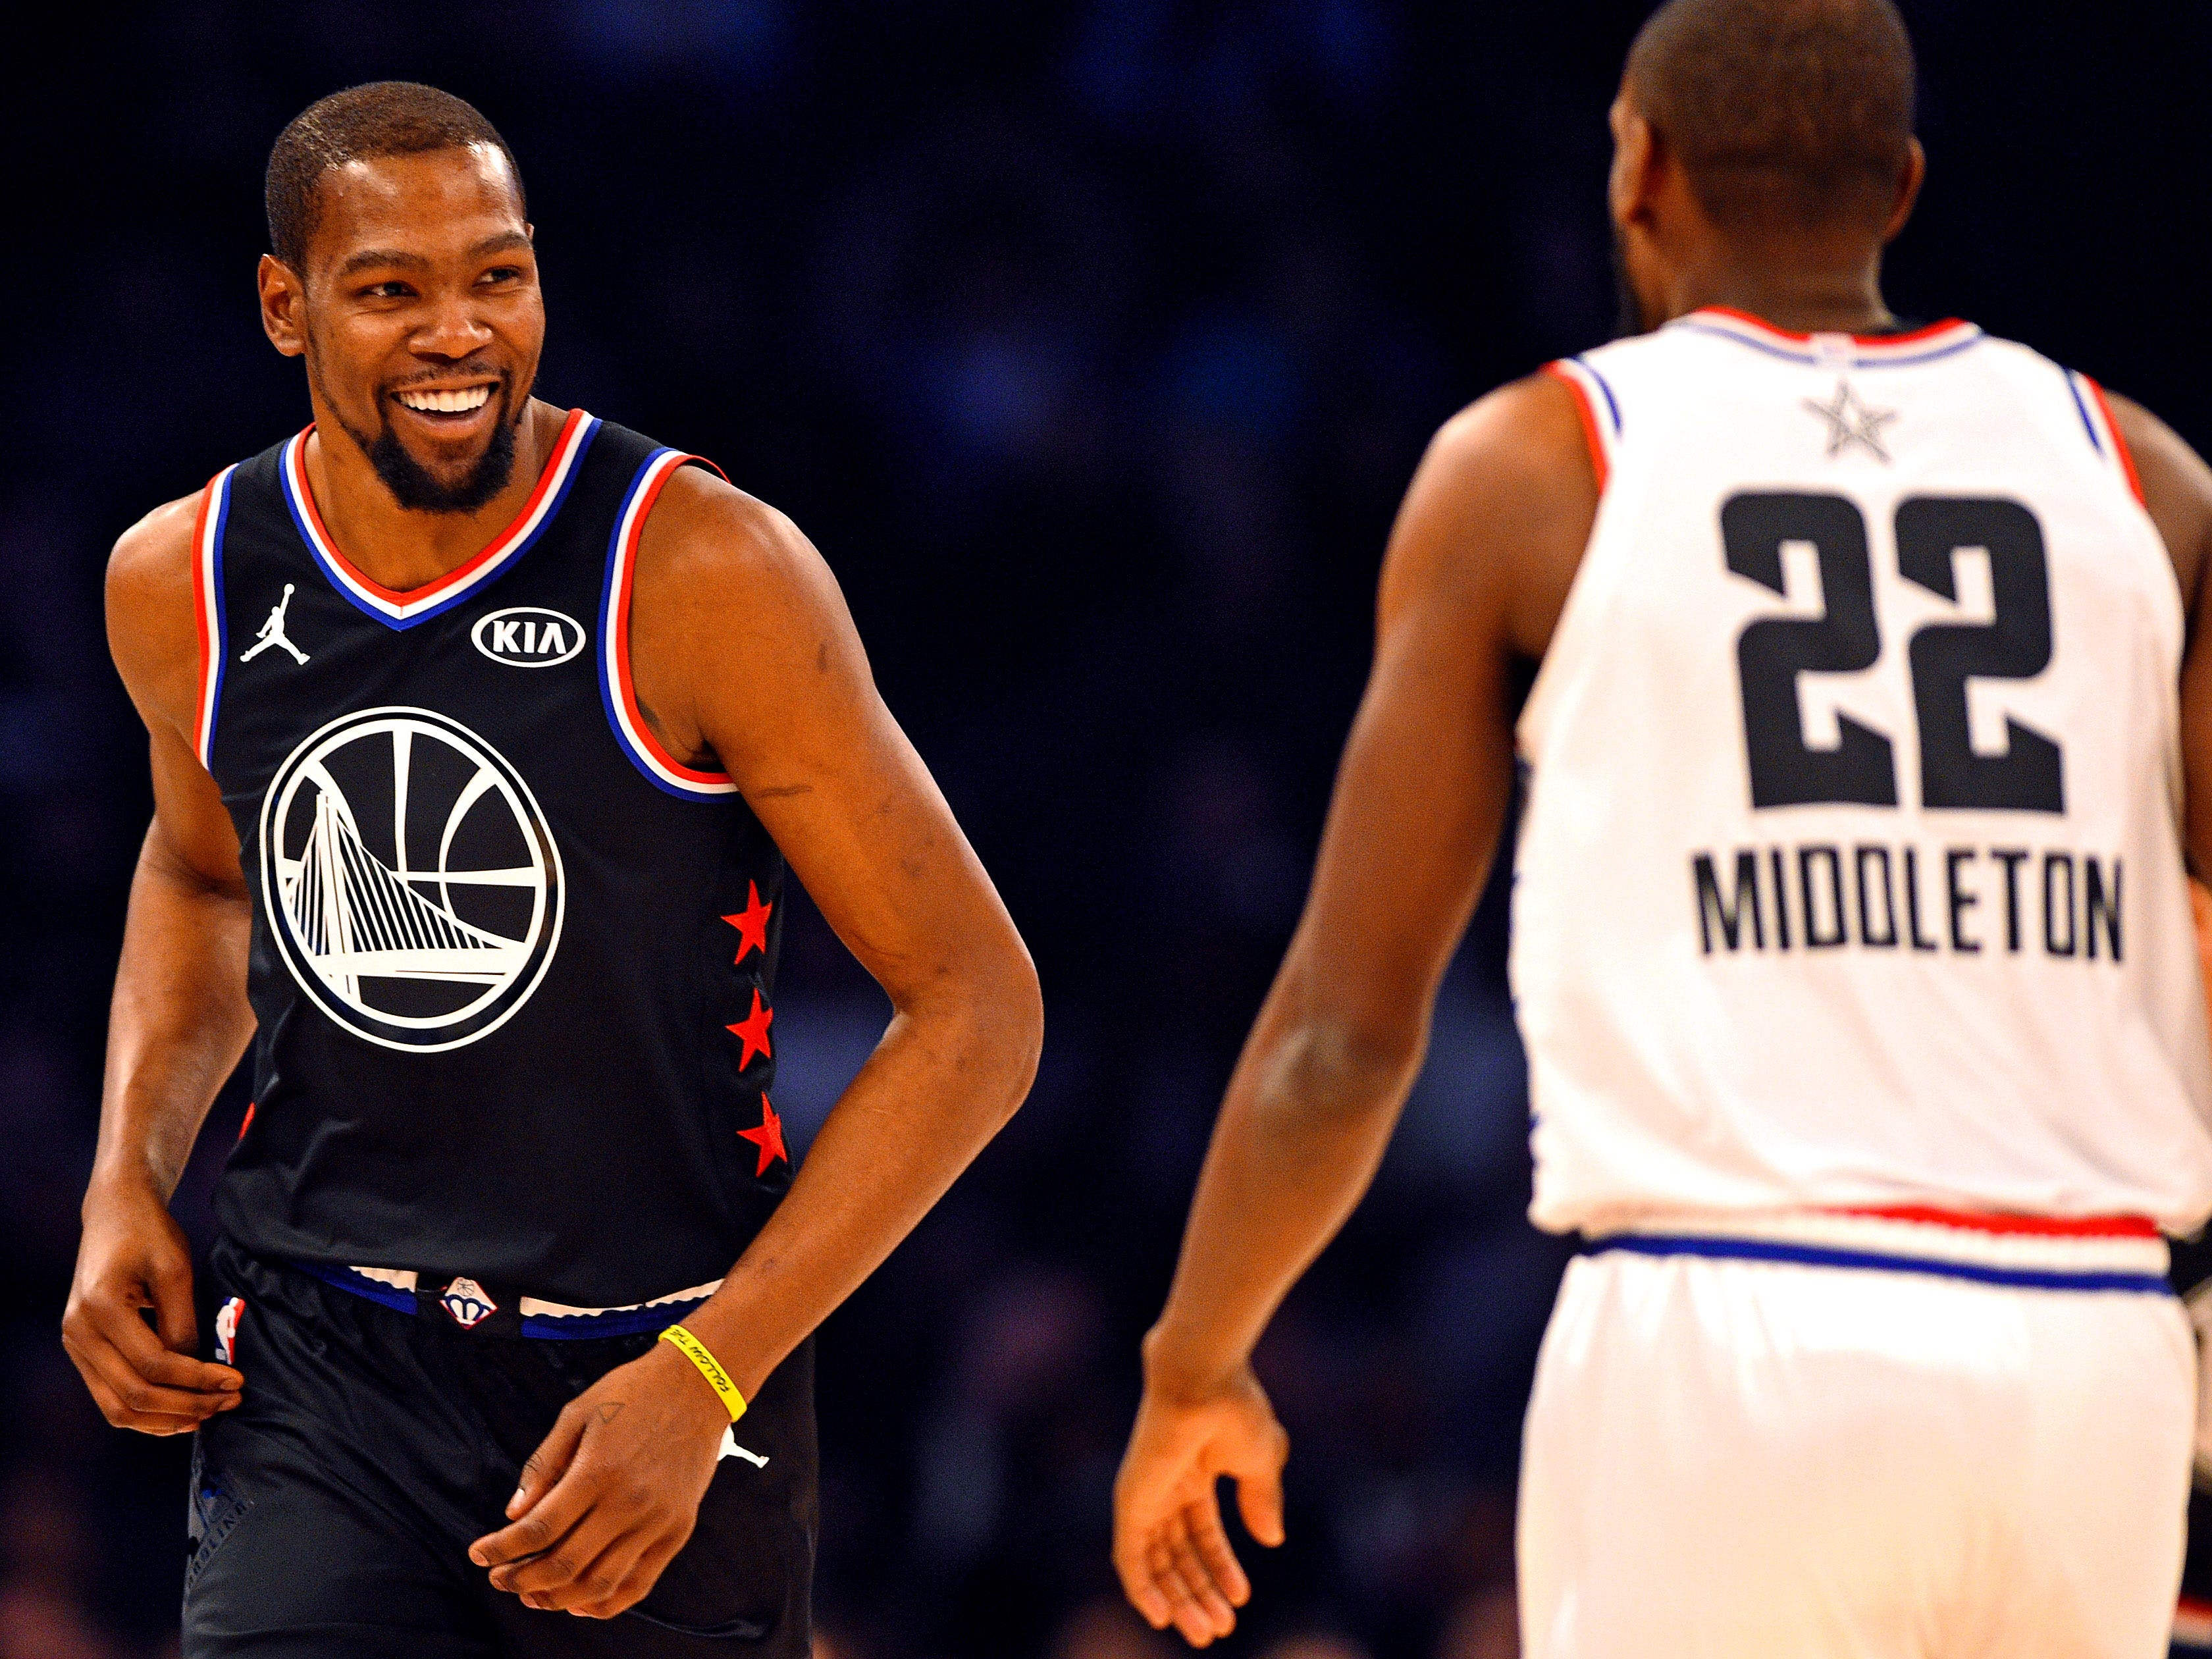 Kevin Durant of the Golden State Warrior shares a laugh with Khris Middleton.